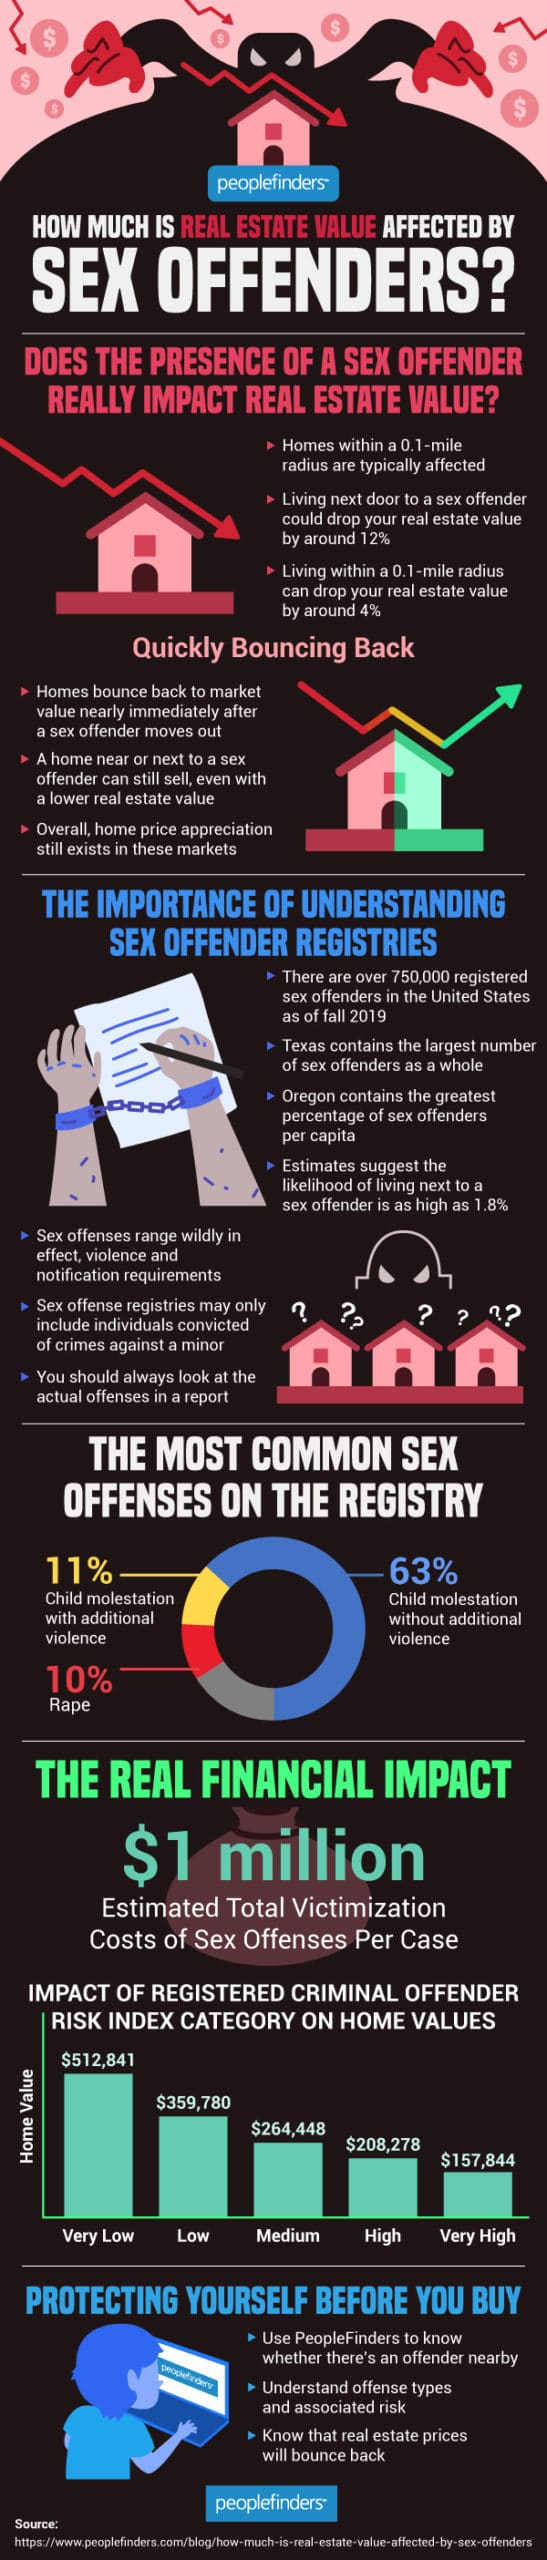 How Much Is Real Estate Value Affected by Sex Offenders?